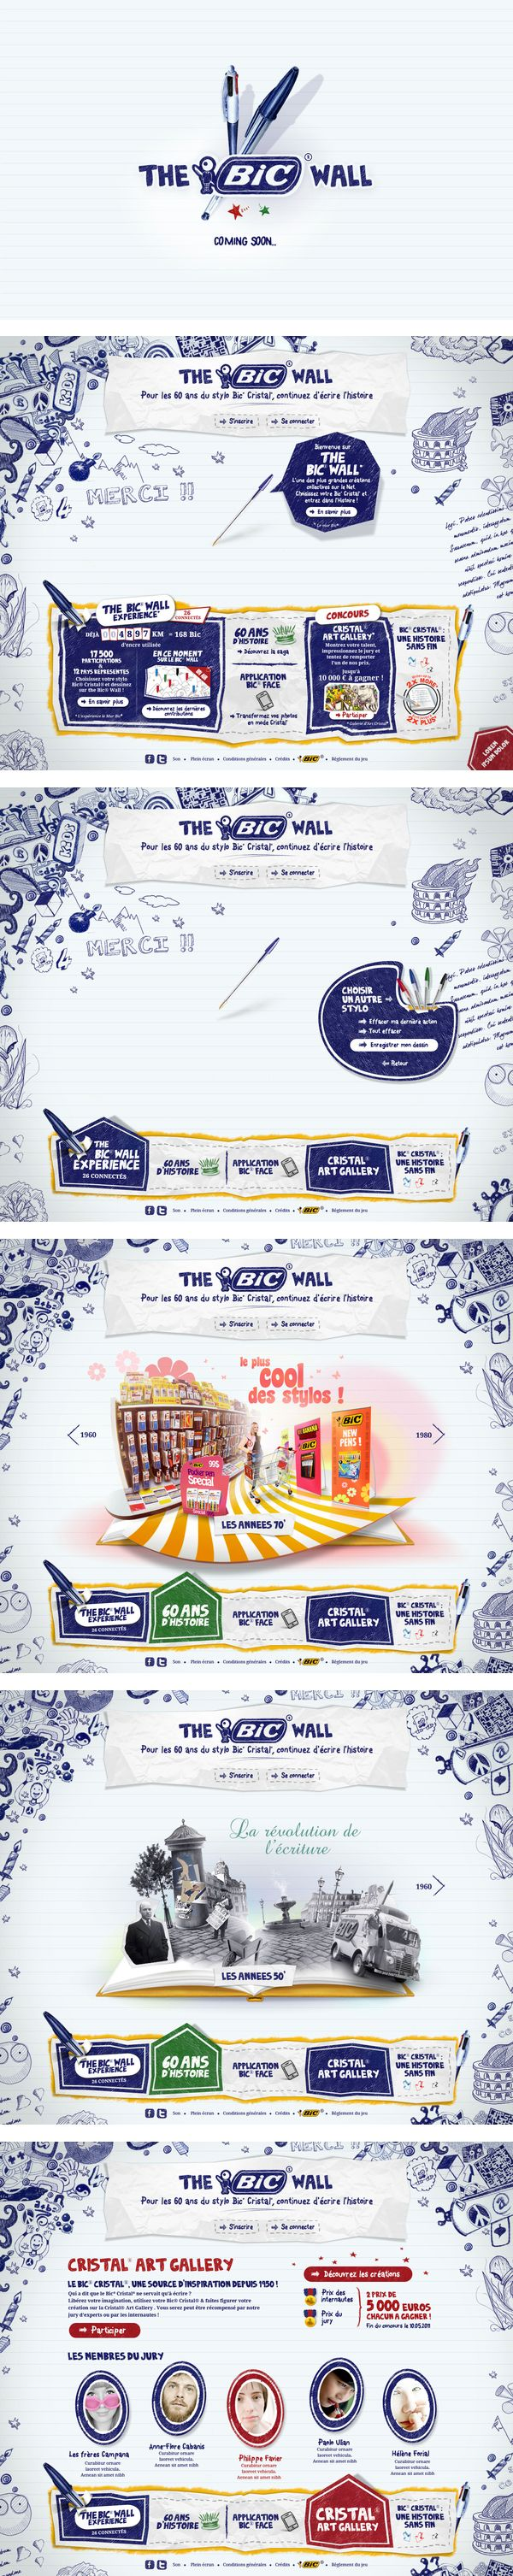 The BIC Wall | #webdesign #it #web #design #layout #userinterface #website #webdesign